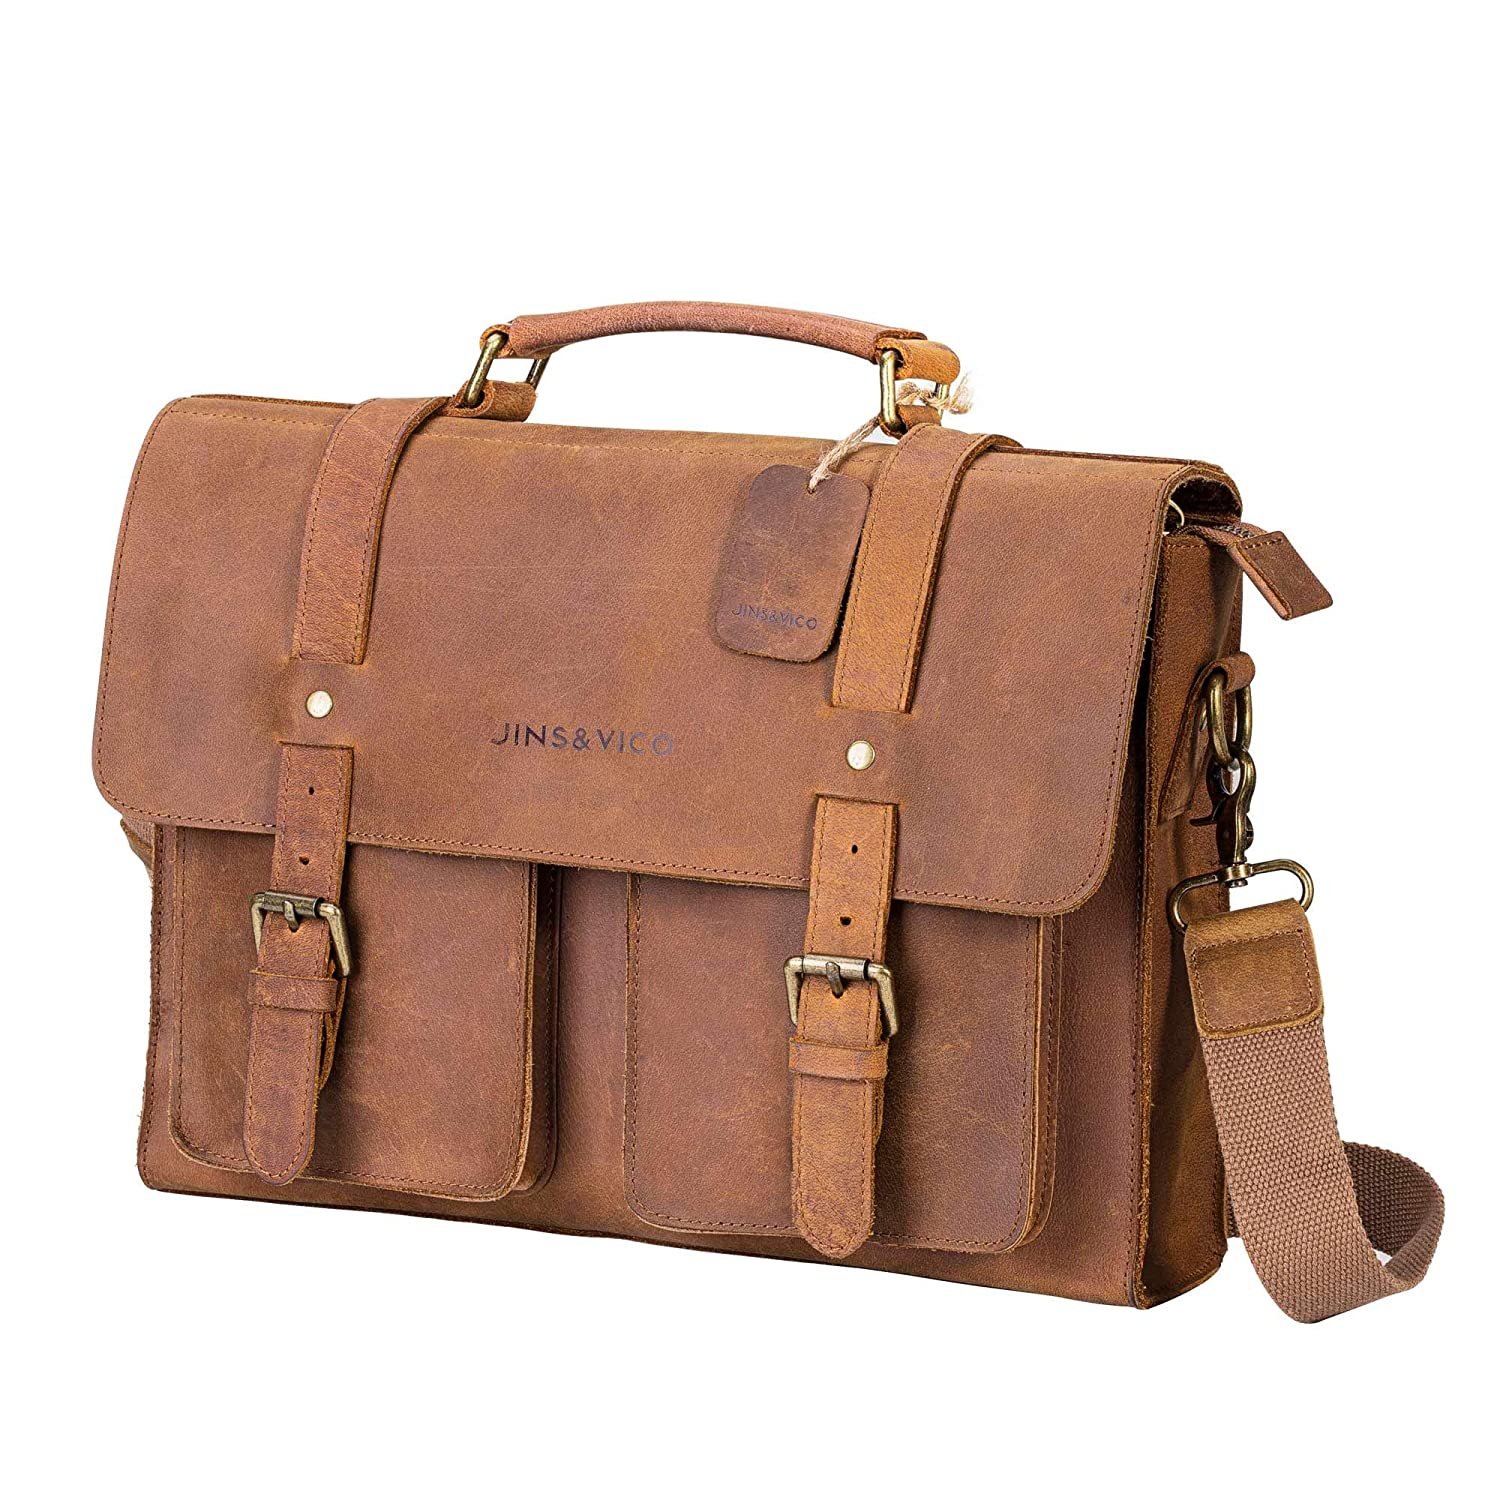 Satchel Leather Messenger Bag Handmade Vintage Small Business Bag Essentials for Laptop iPad Leather Briefcase for Men and Women Crossbody Khaki